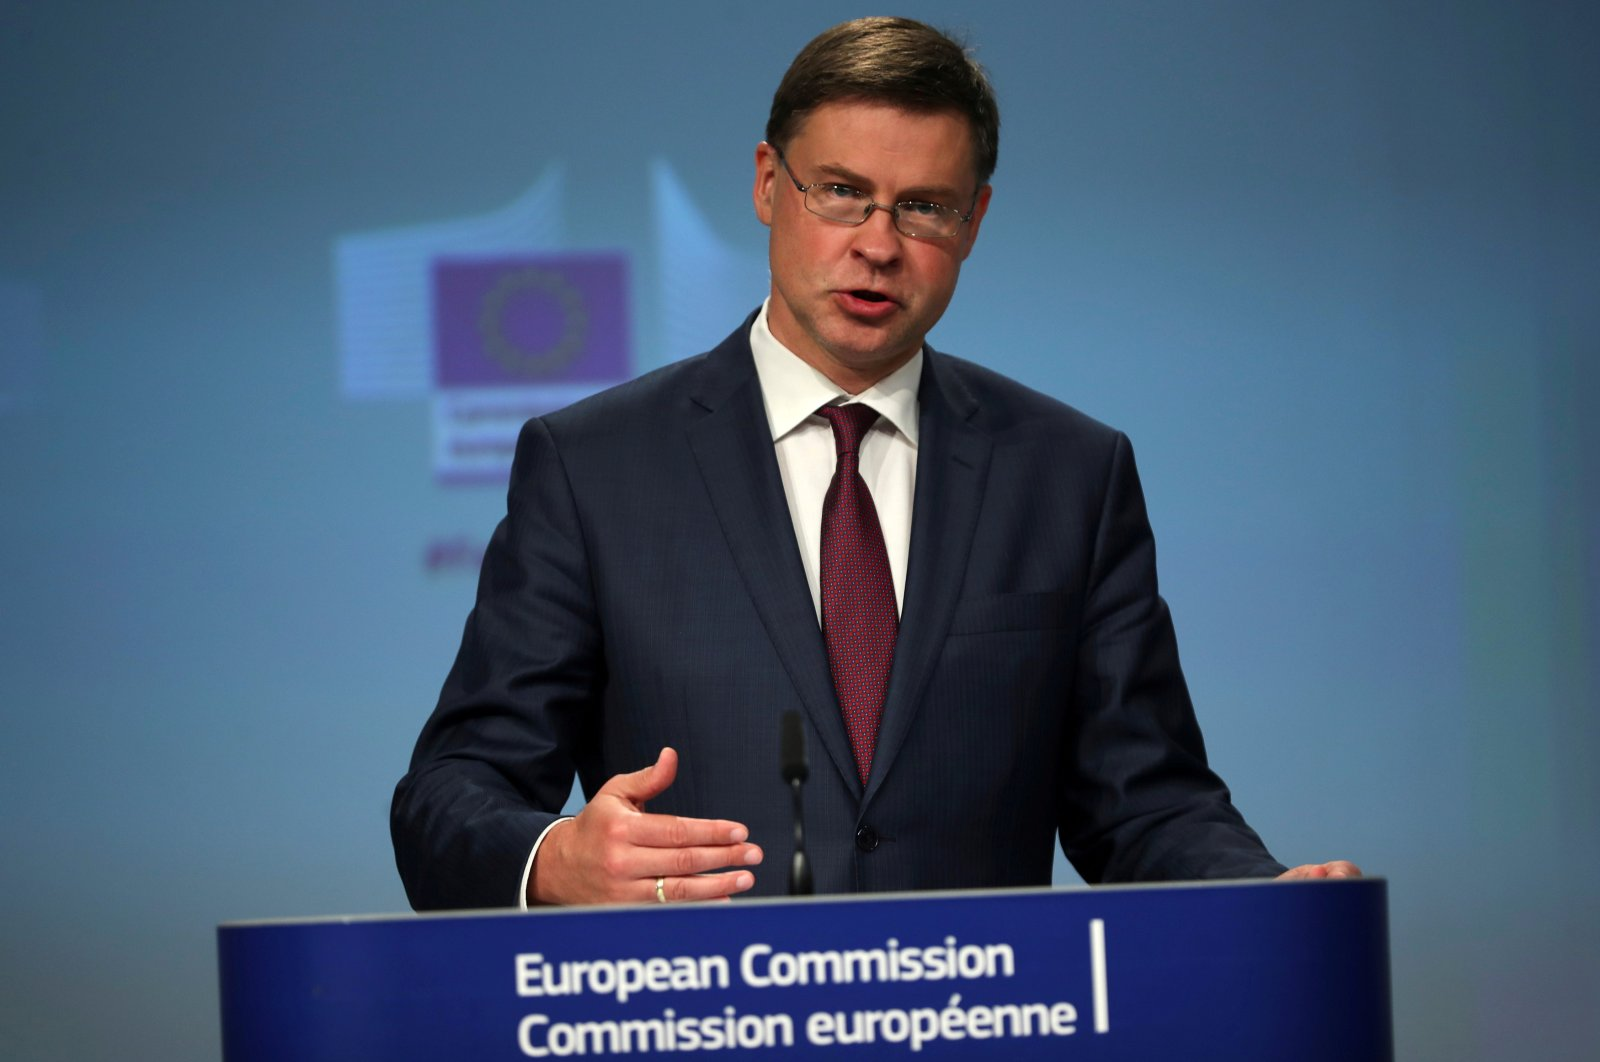 European Commission Vice-President Valdis Dombrovskisaddresses the media on EU's anti-fraud package during a news conference in Brussels, Belgium, July 15, 2020. (Reuters Photo)